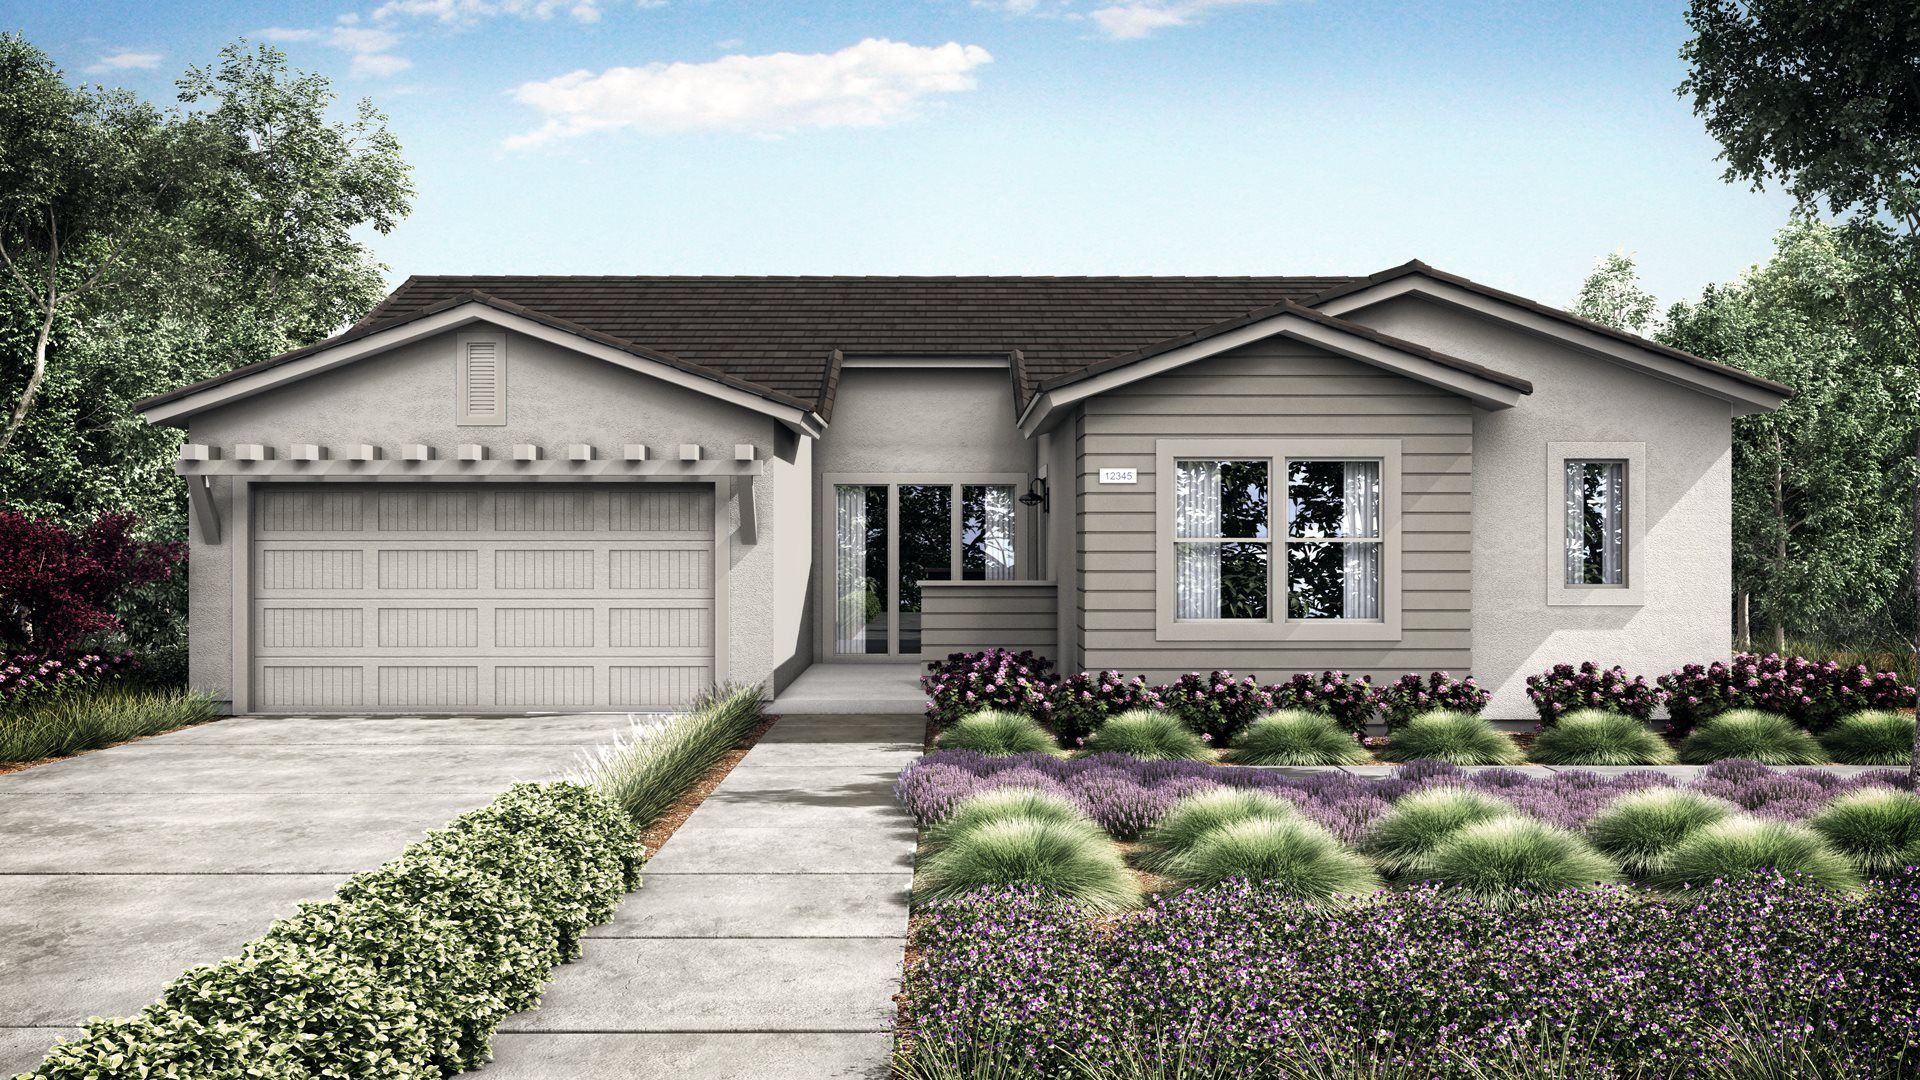 Solstice Next Gen New Home Plan In Ironsides Skye Series By Lennar In 2020 New House Plans Lennar House Plans